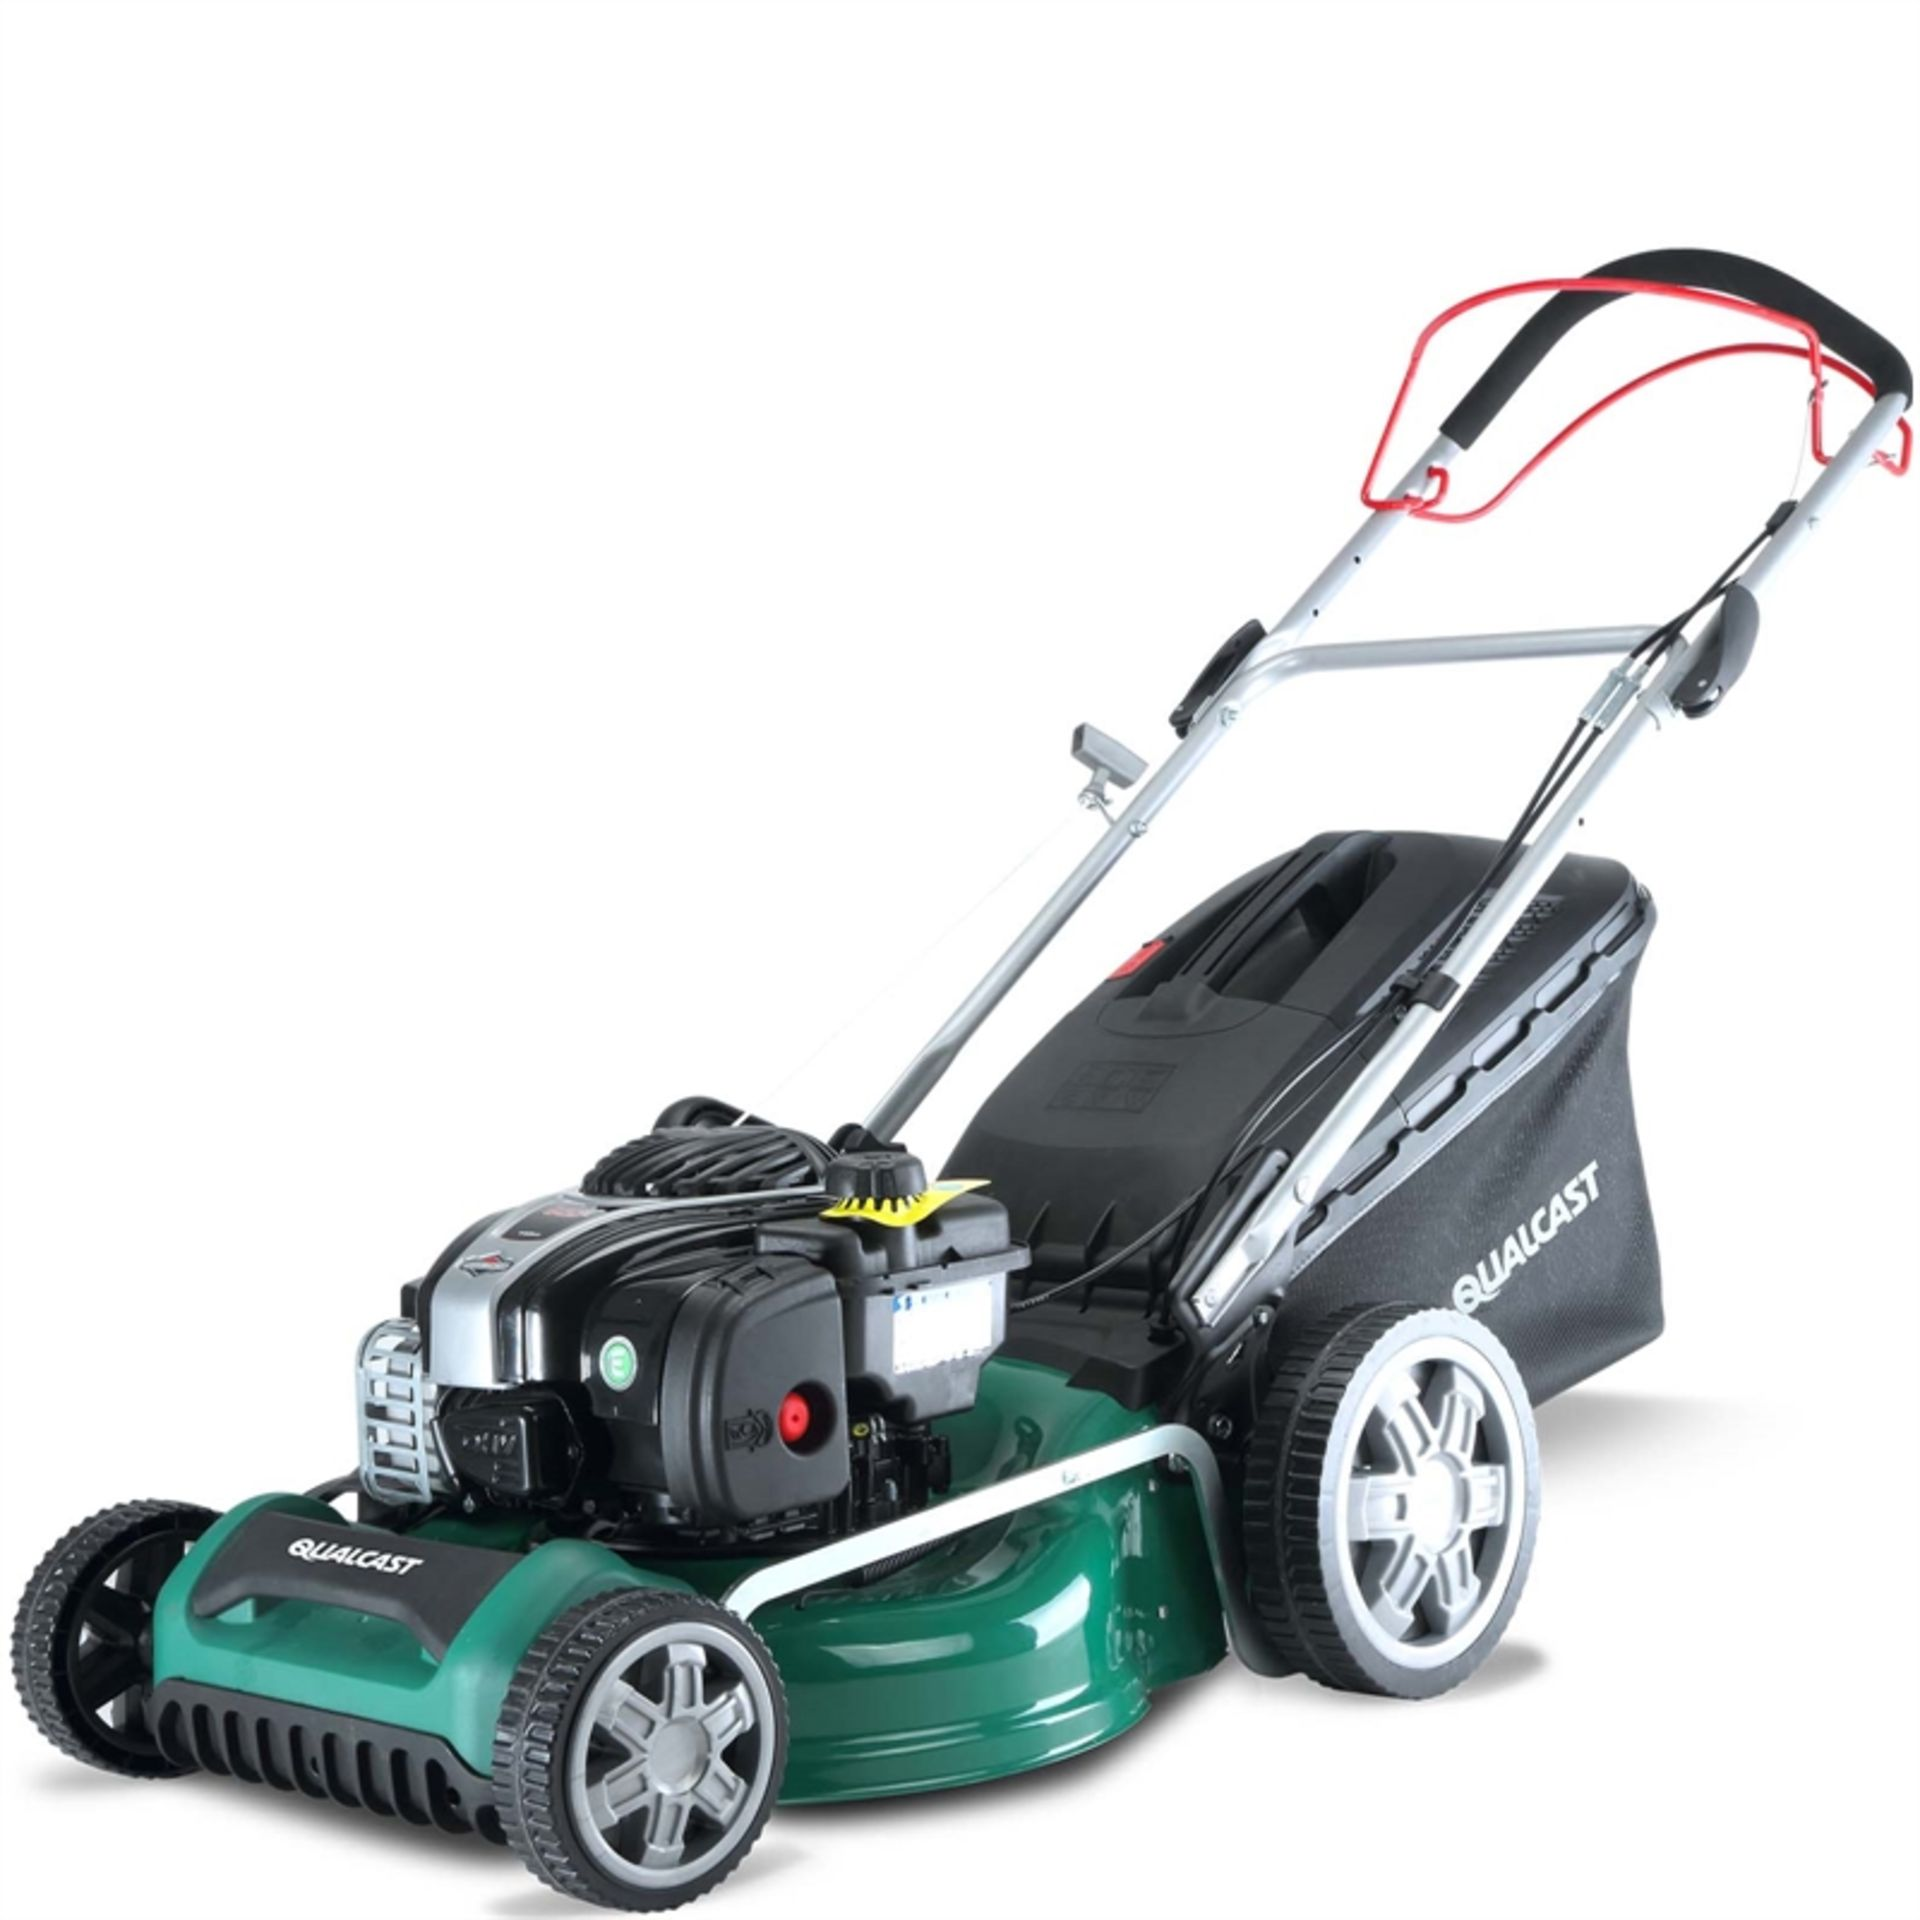 Lot 10086 - V Brand New Qualcast SPP46 46cm 140cc Self Propelled Petrol Rotary Lawnmower - 55L Collect